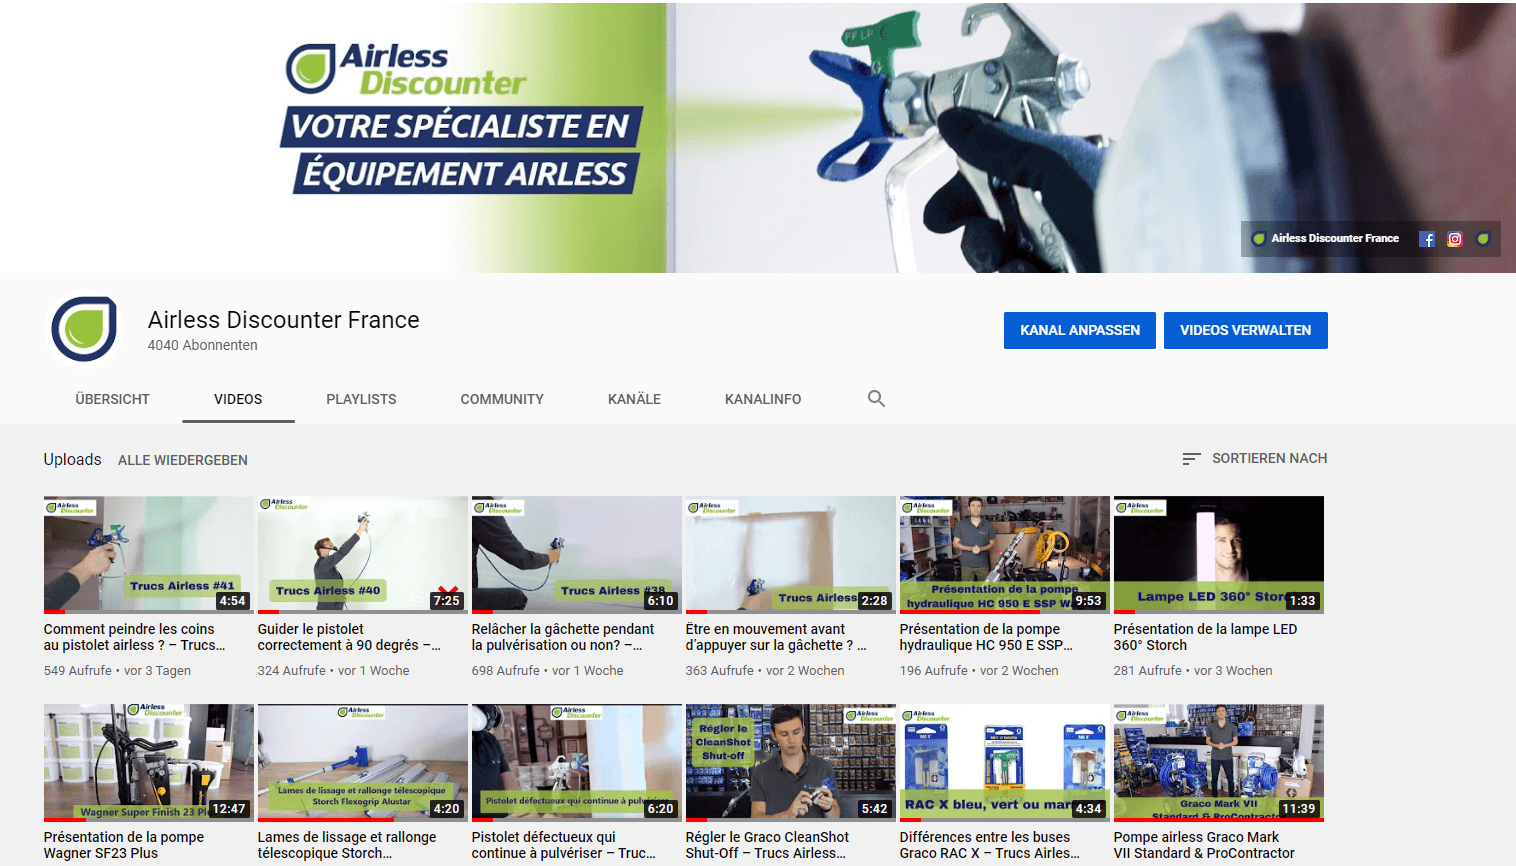 YouTube français Airless Discounter